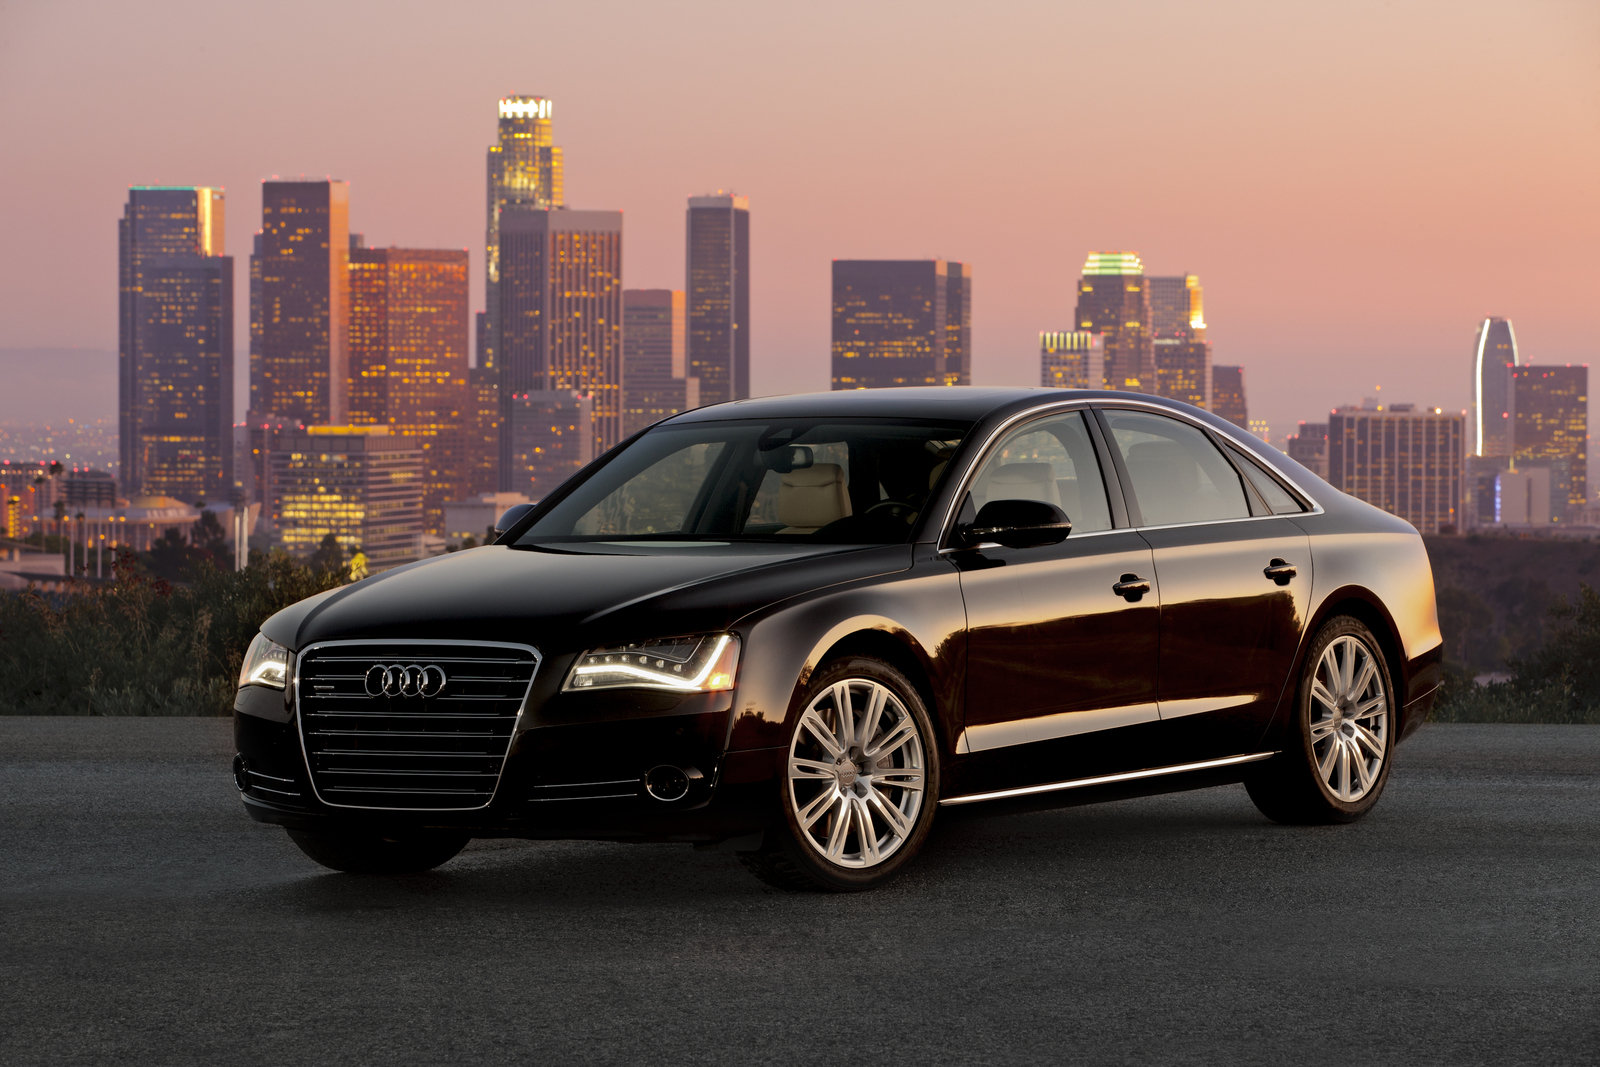 2014 audi a8 review top speed. Black Bedroom Furniture Sets. Home Design Ideas